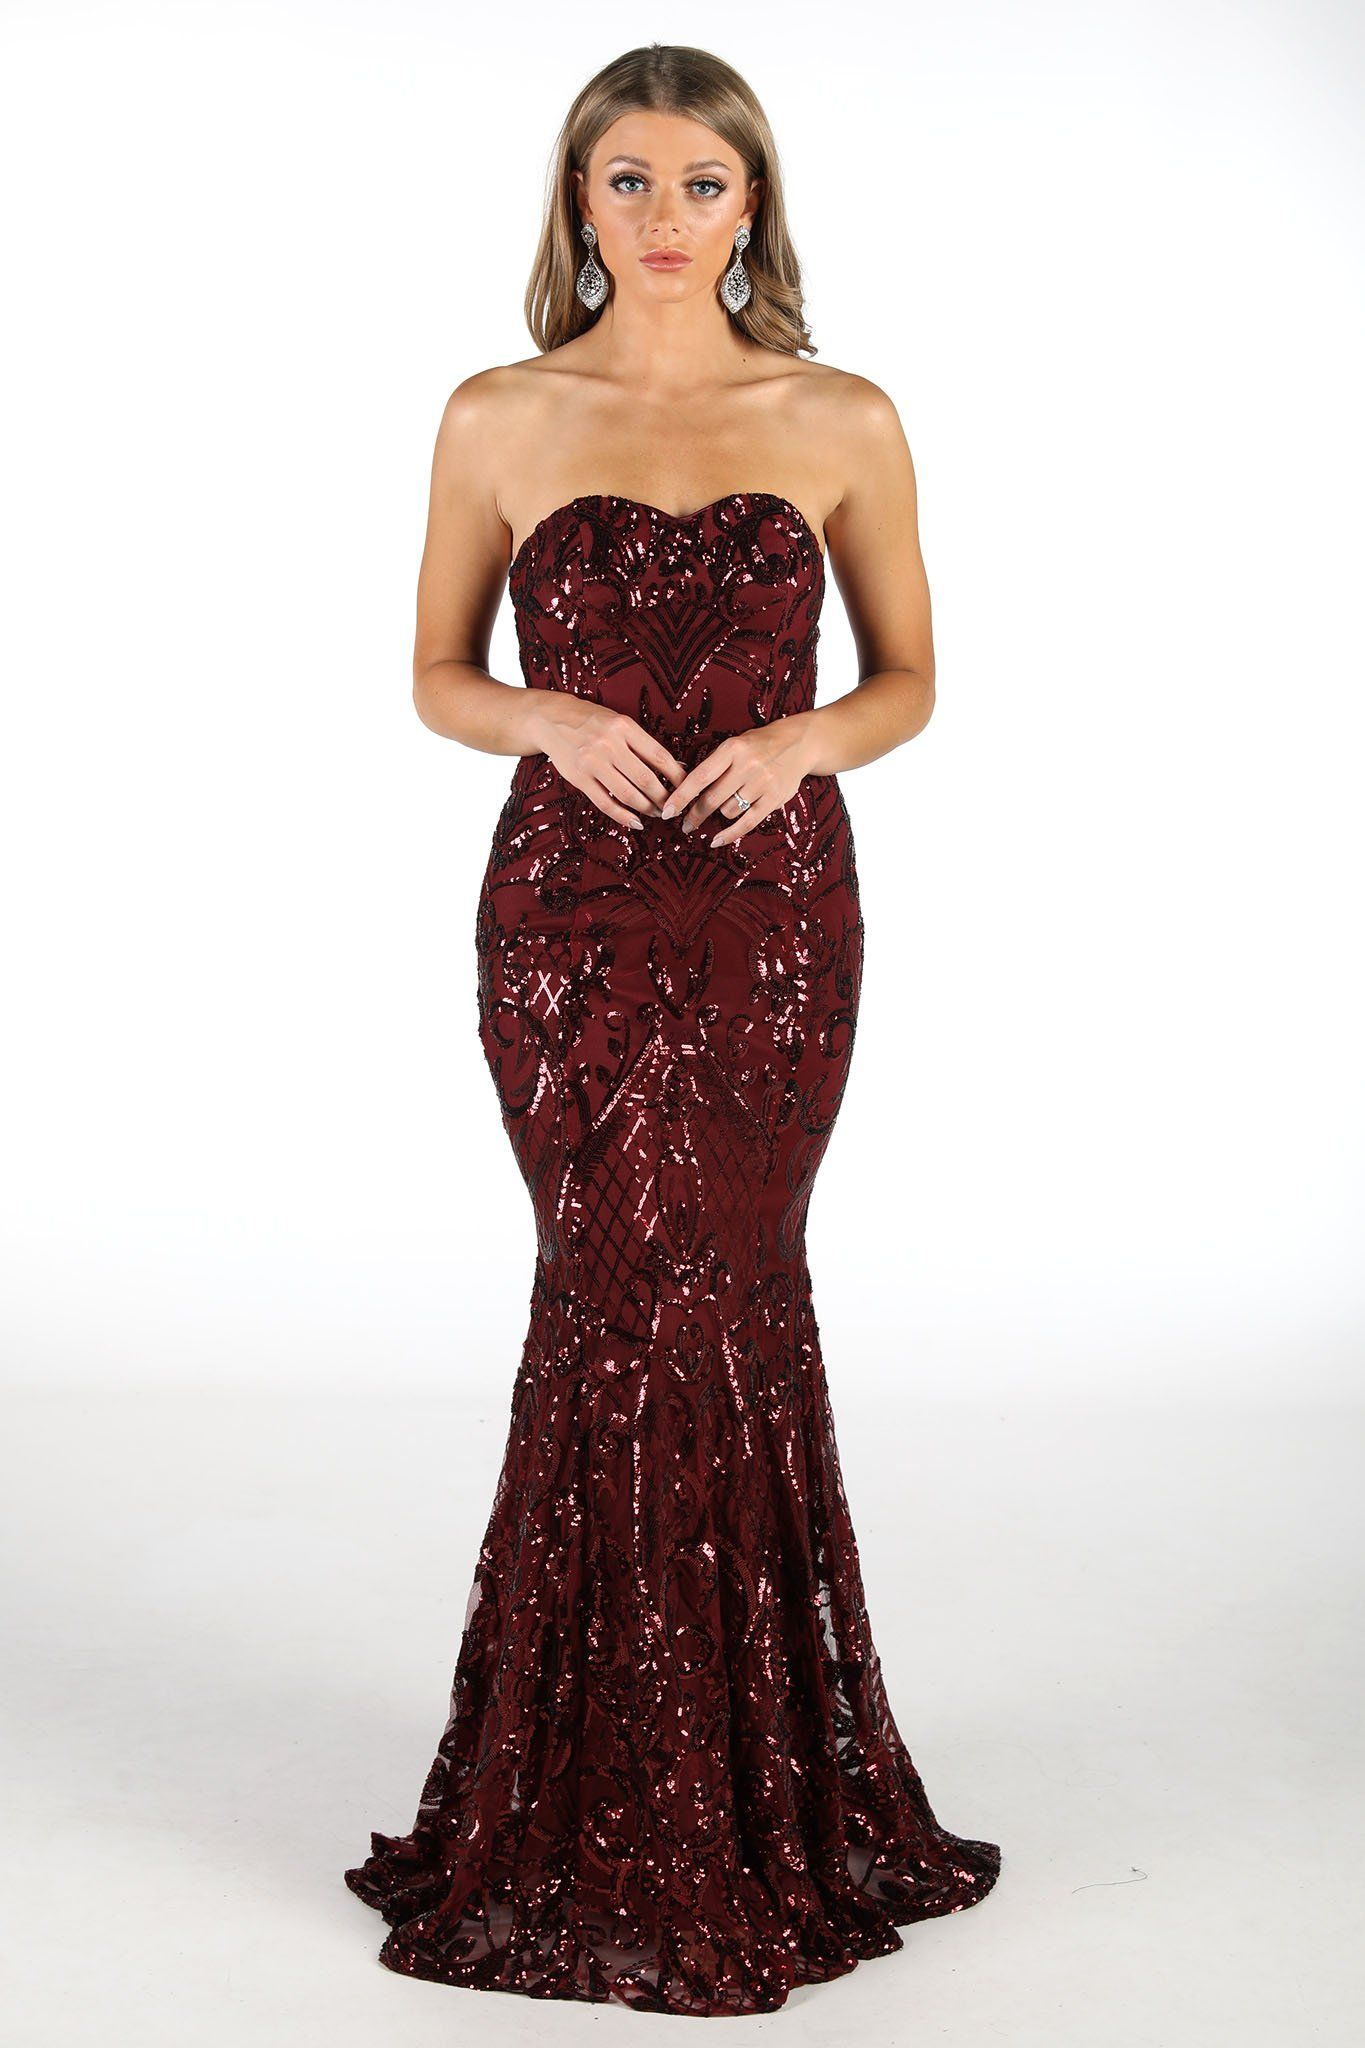 Embroidered Pattern Sequin Floor Length Dress in Deep Burgundy Colour with Sweetheart Neckline and Form-Fitting Gently Flared Mermaid Silhouette